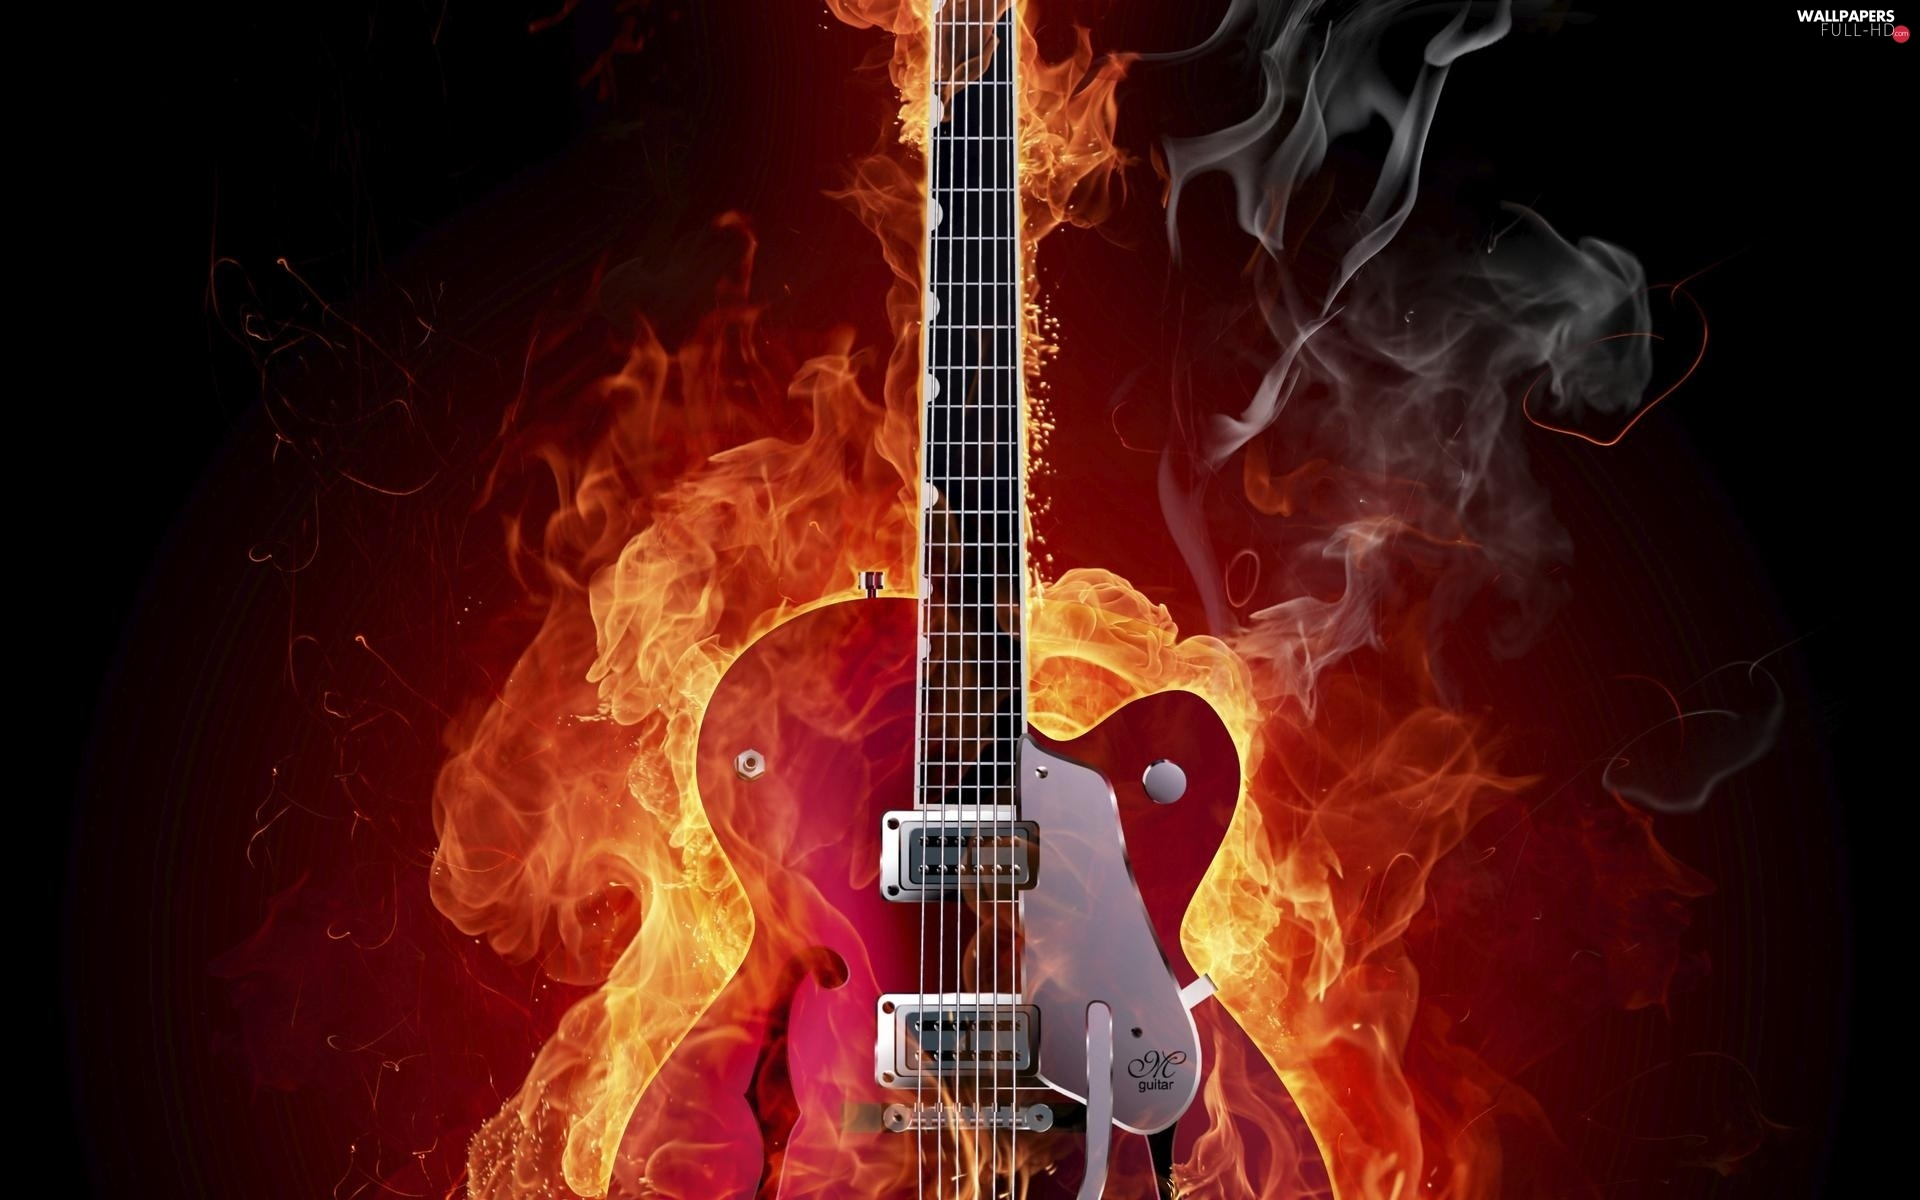 Big Fire, Guitar